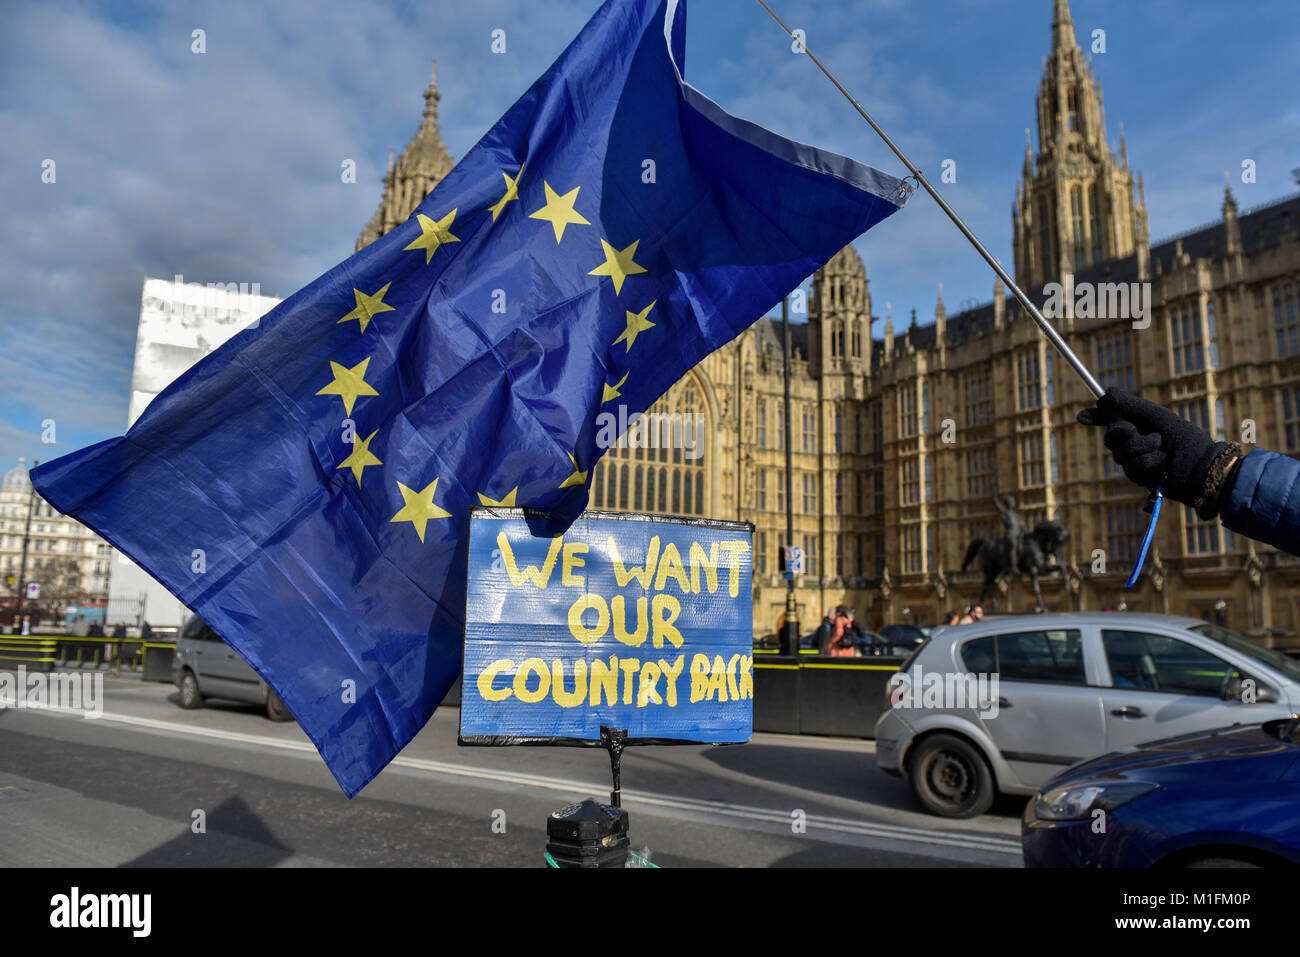 London, UK.  30 January 2018.  Campaigners carrying European Union flags gather outside the Houses of Parliament - Stock Image